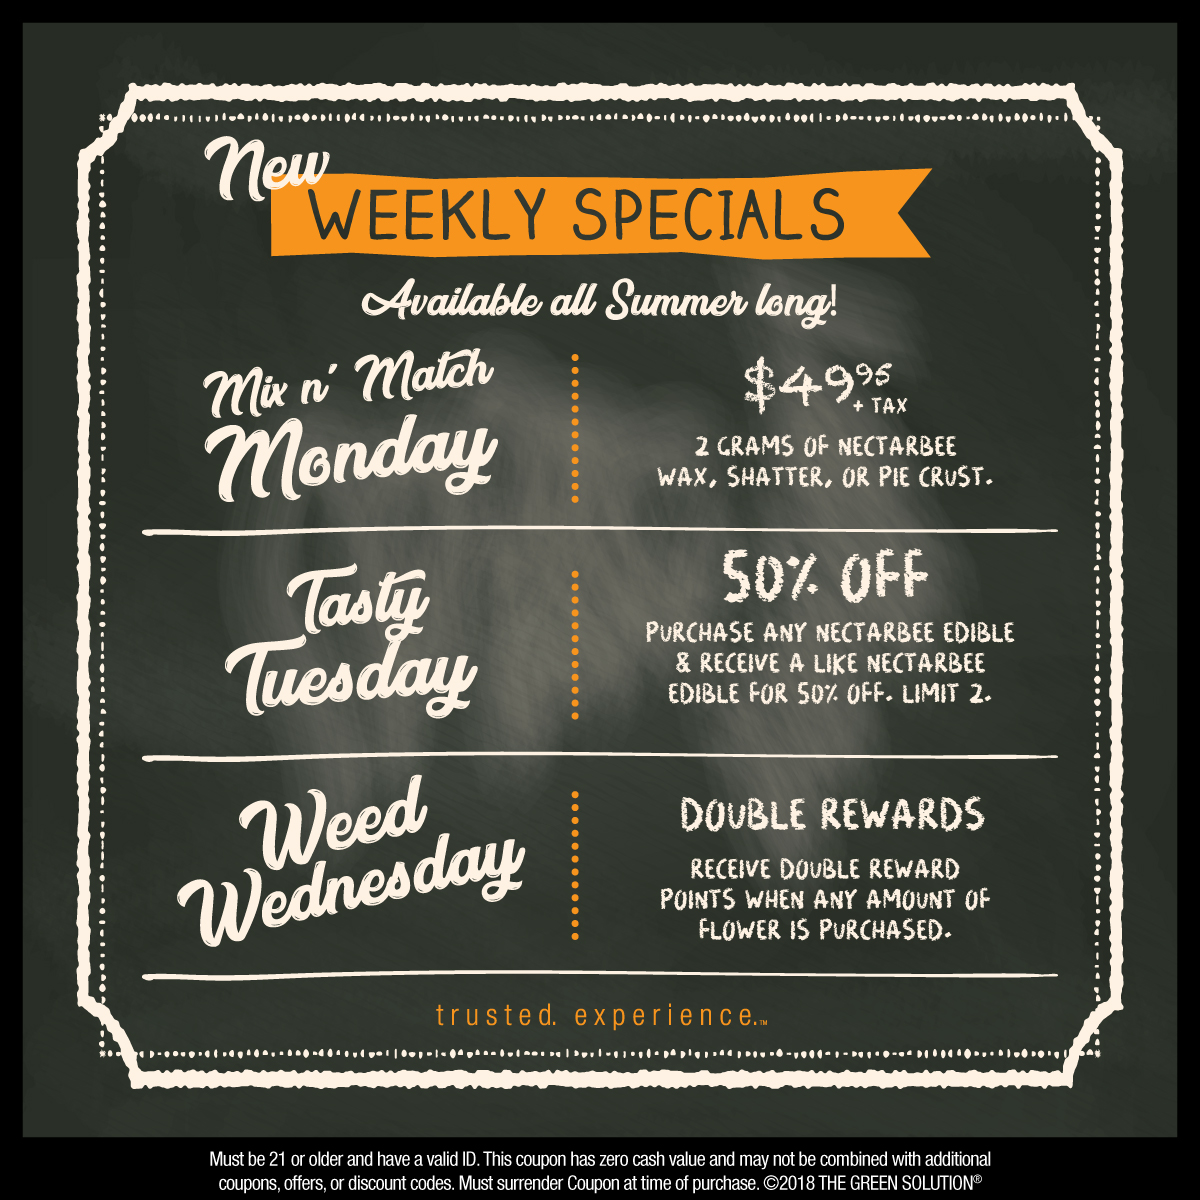 Weekly Specials at The Green Solution